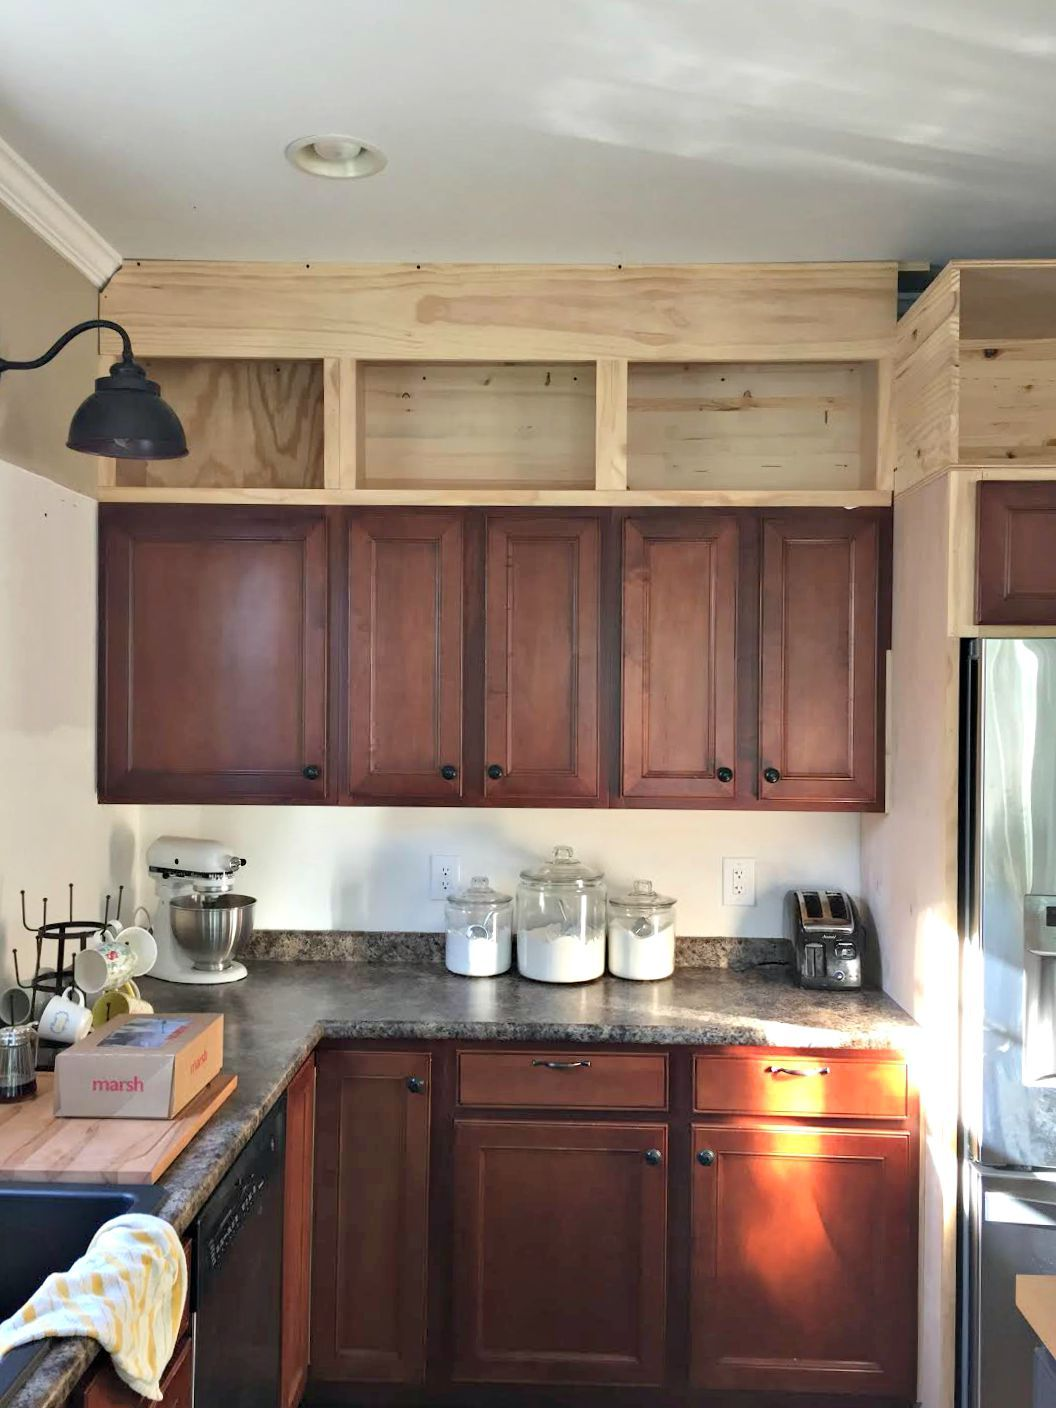 building cabinets up to the ceiling above kitchen cabinets cabinets to ceiling diy kitchen on kitchen cabinets to the ceiling id=87359